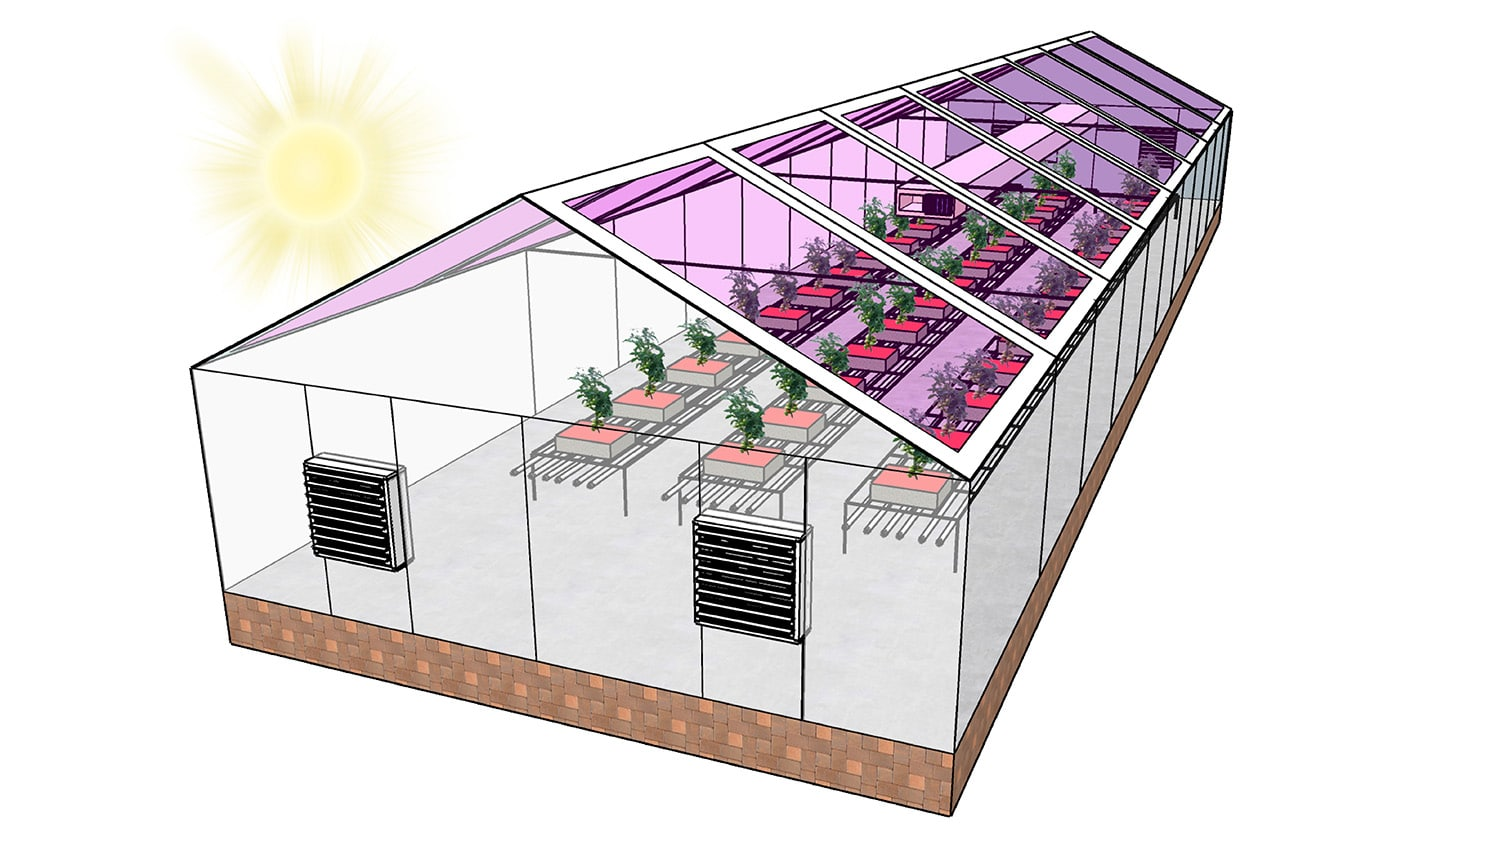 diagram of a greenhouse with translucent solar panels on the roof.